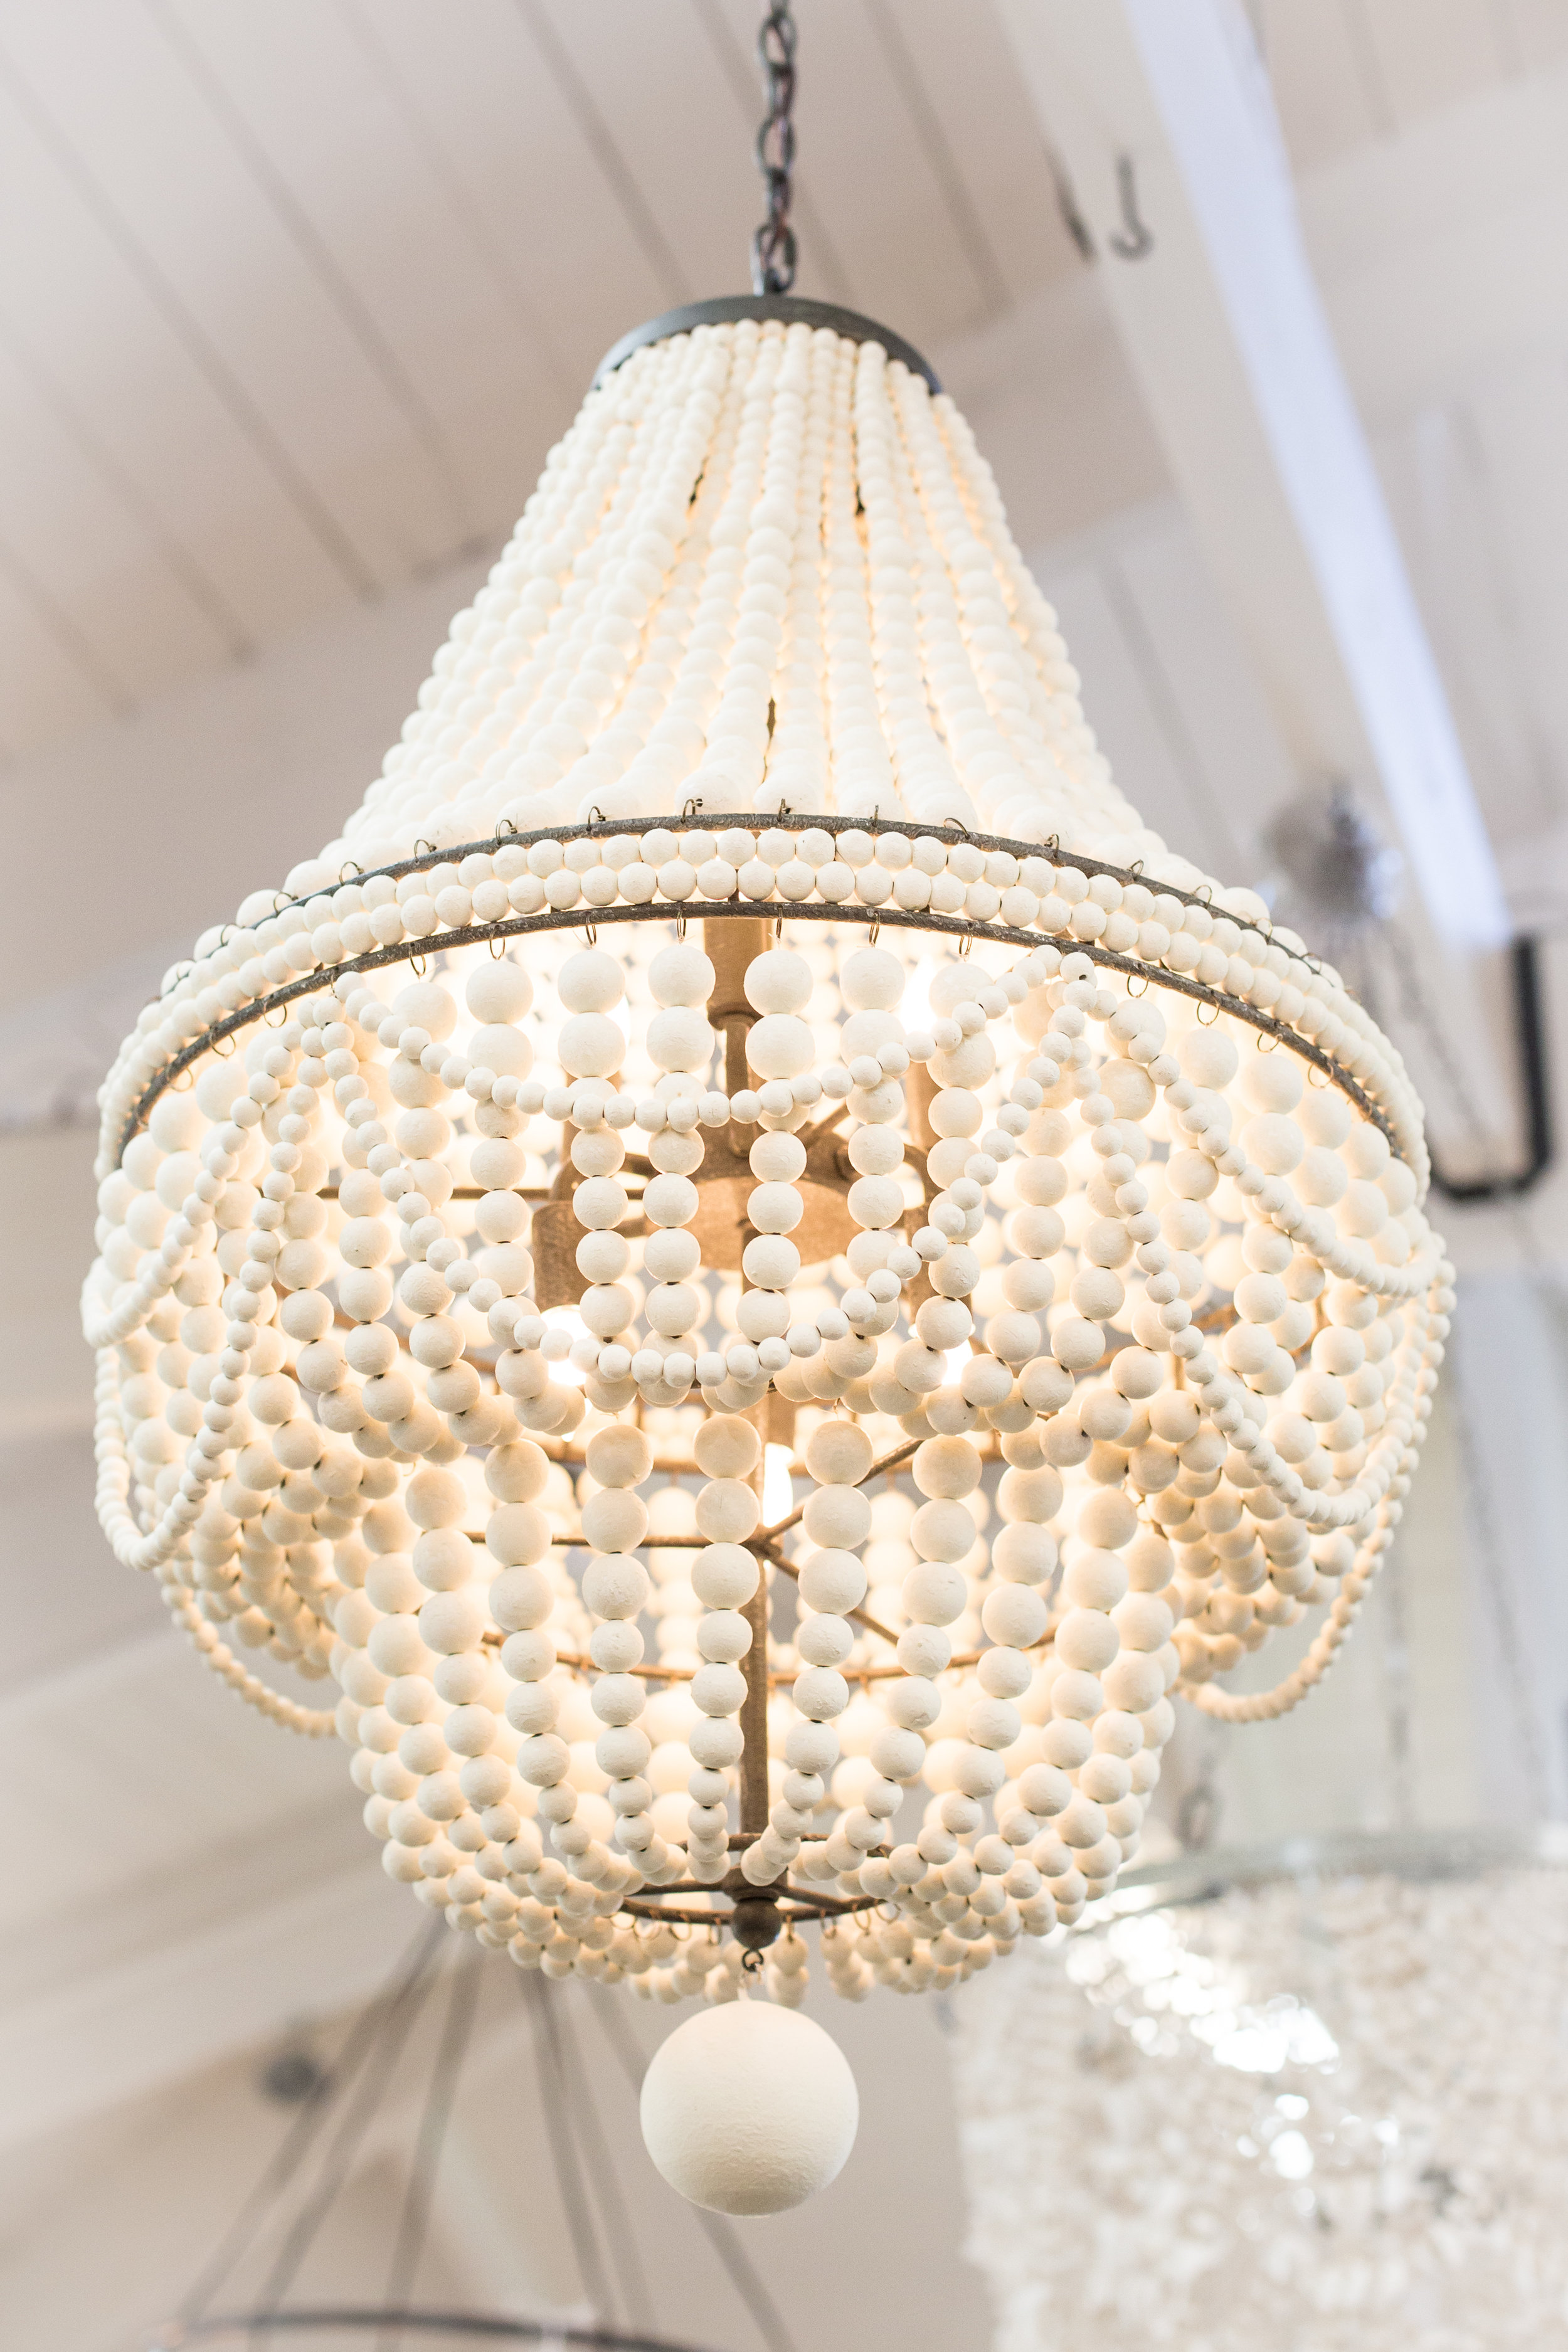 Classic white chandelier